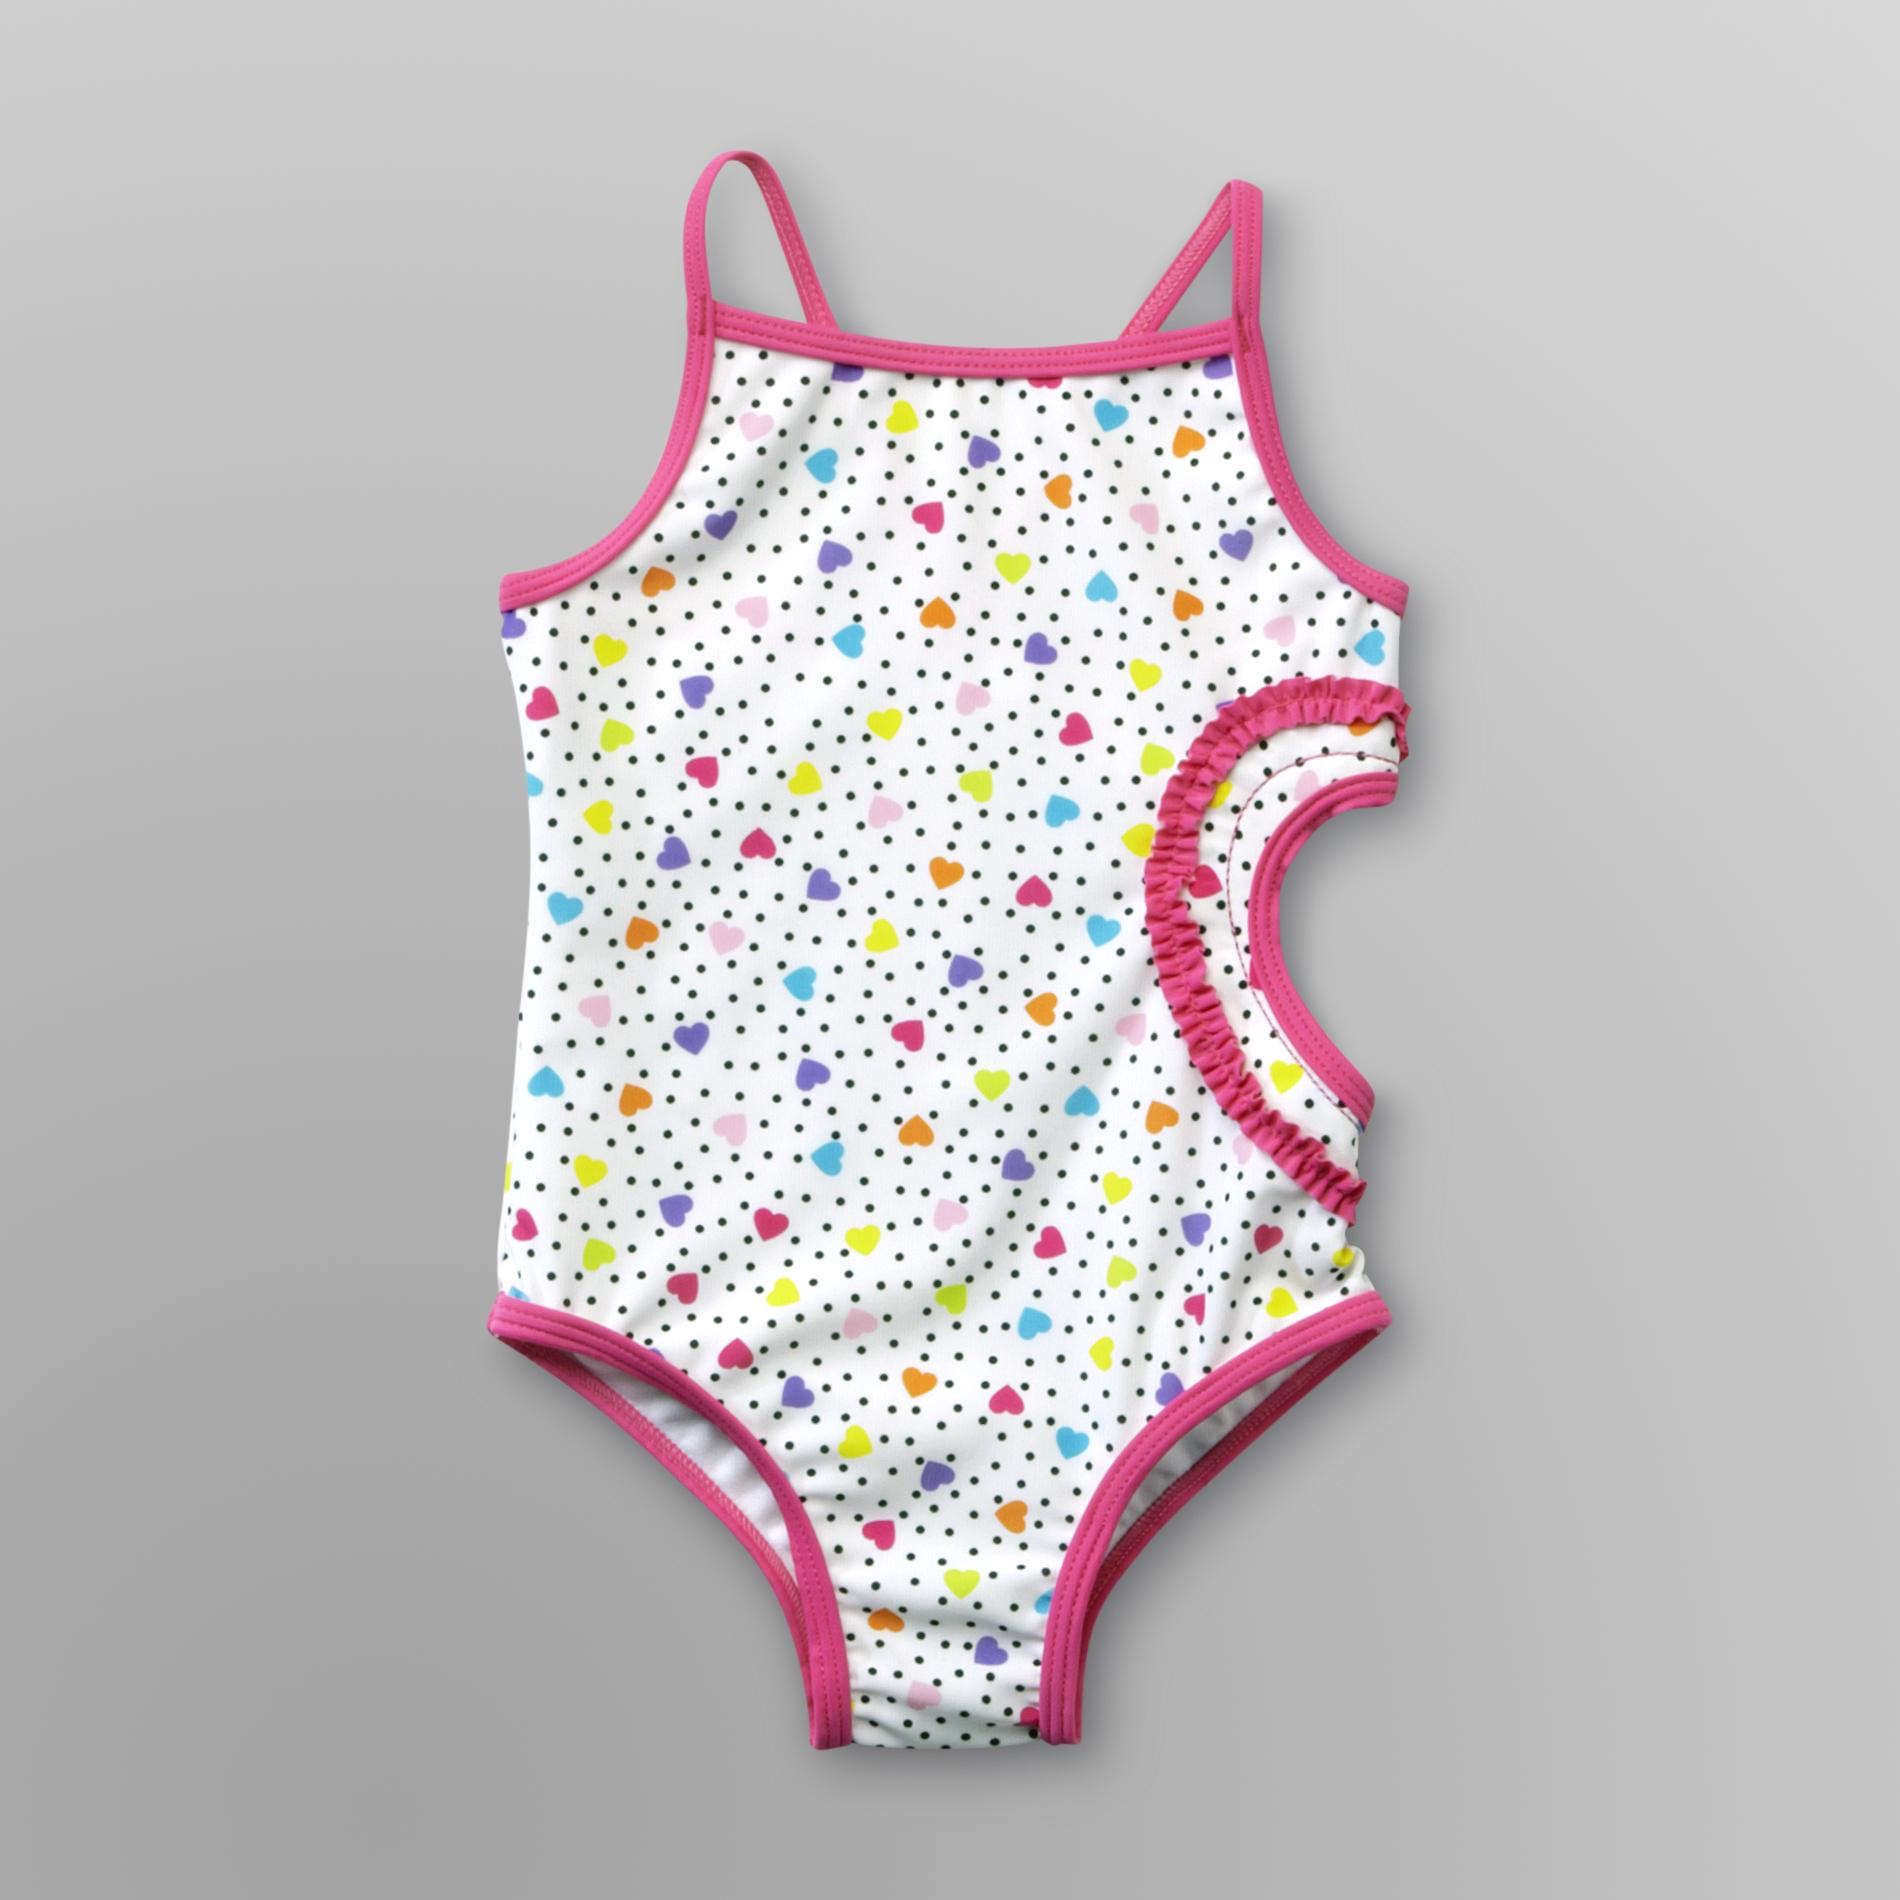 Infant & Toddler Girl's One-Piece Swimsuit - Hearts